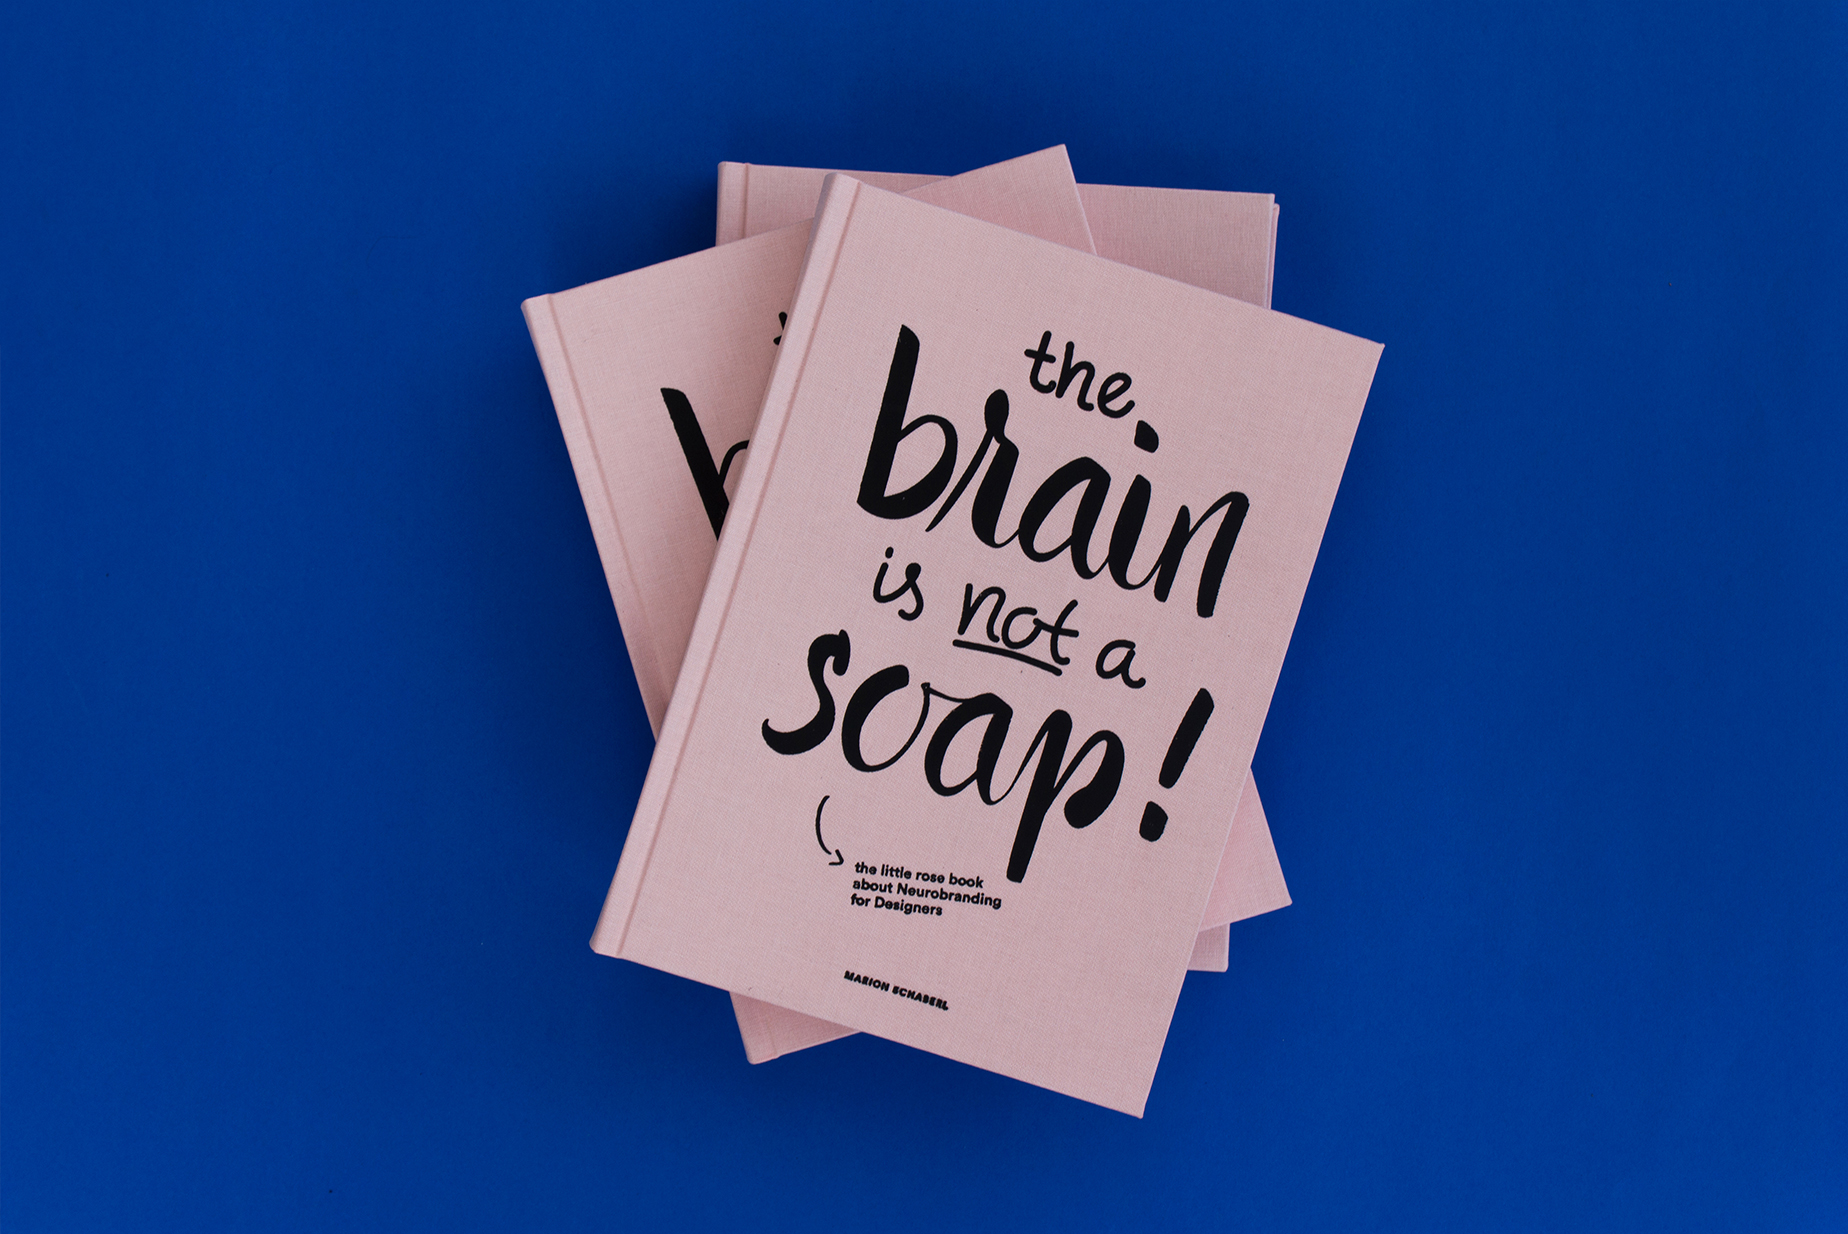 the brain is not a soap!